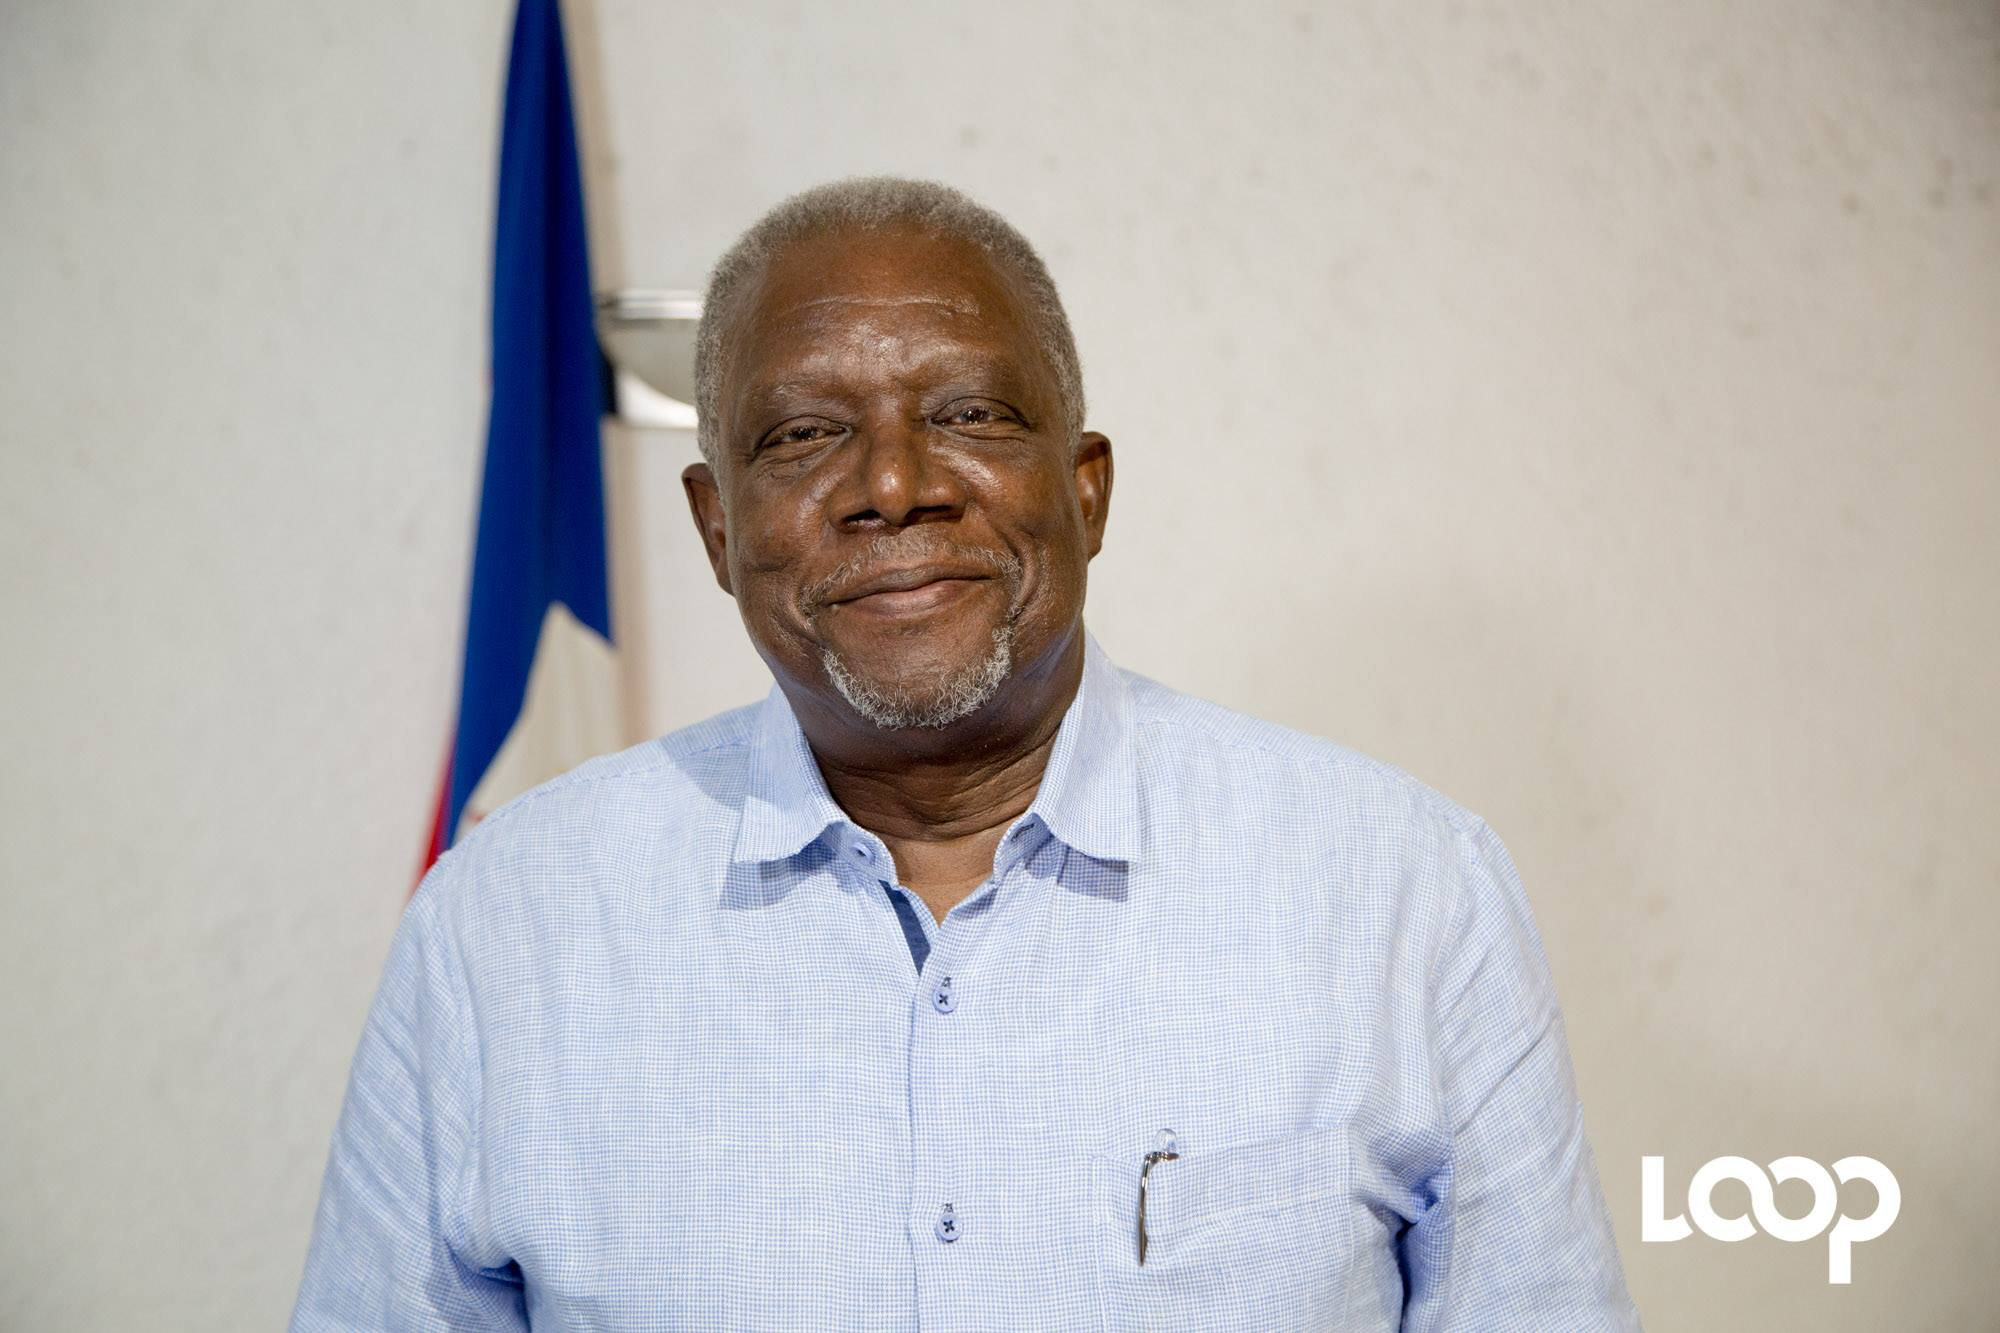 Le Ministre de la défense, Hervé Denis. Photo : Estailove St-Val, LoopHaiti/Archives